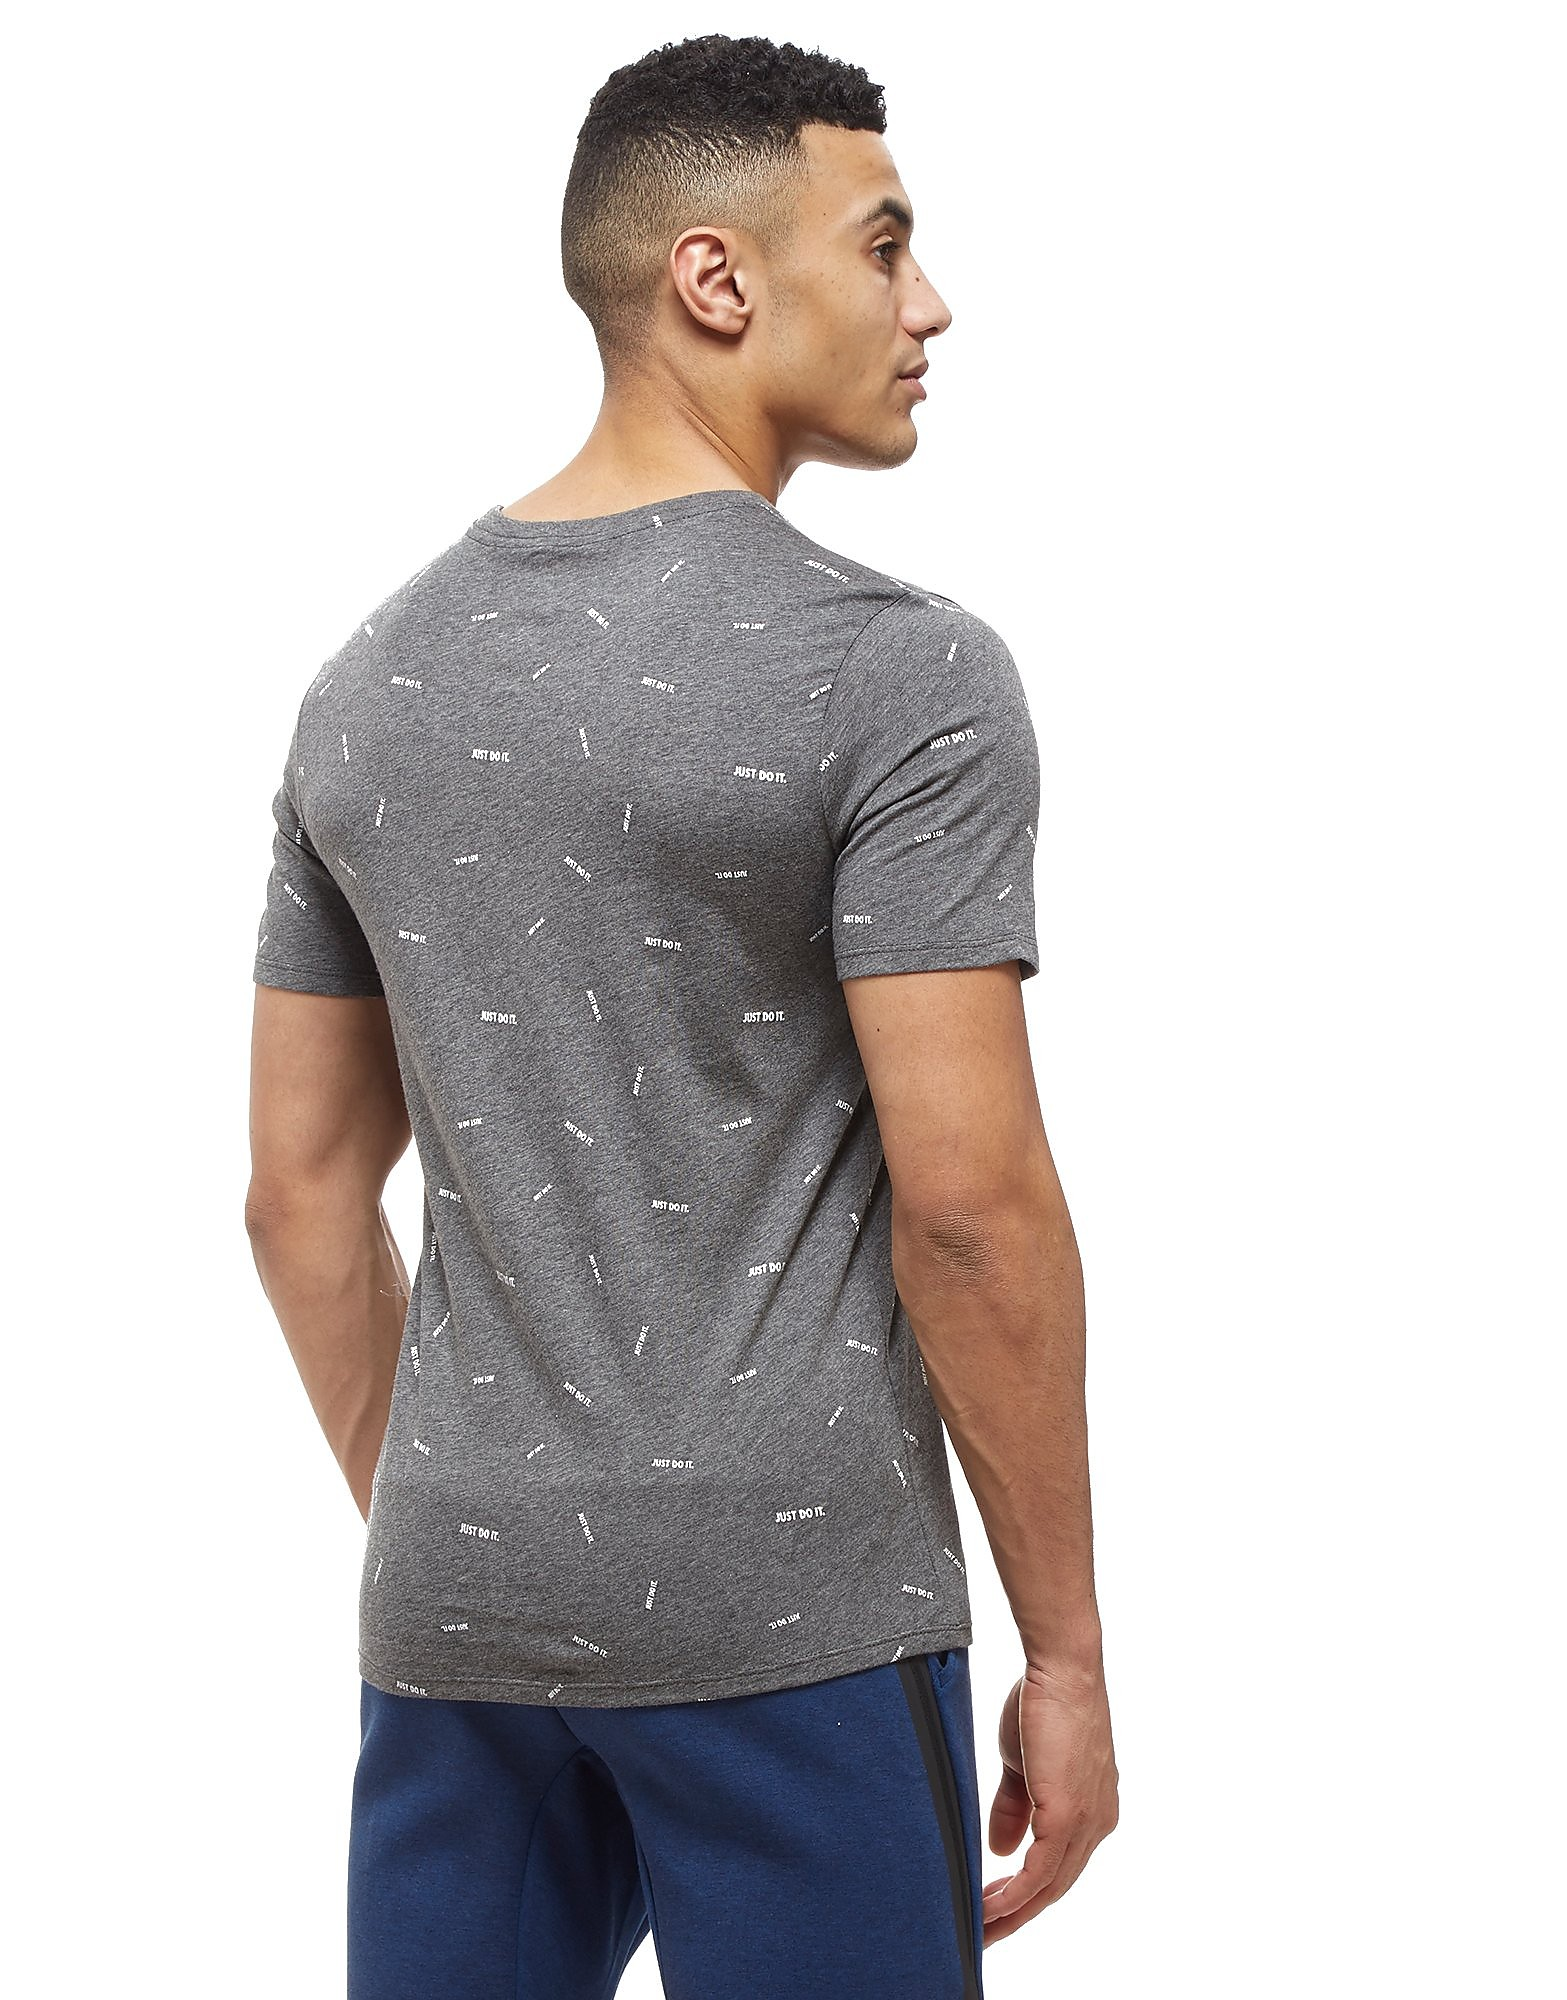 Nike Just Do It All Over Print T-Shirt